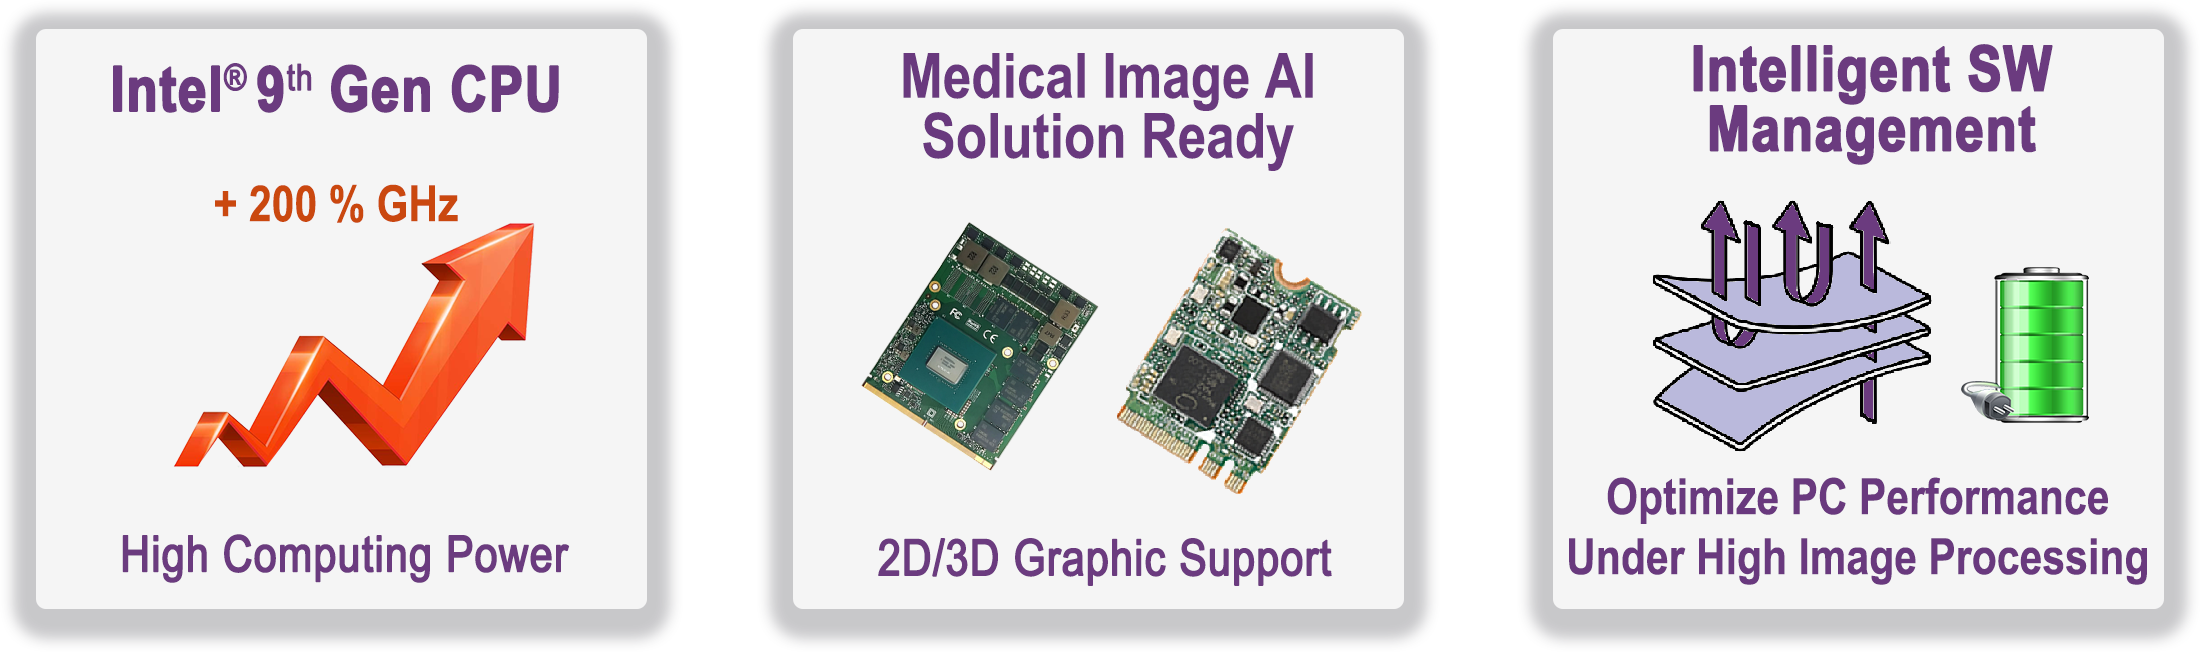 proimages/news/Product_news/2020/20201104/Medical_AI_Features.png